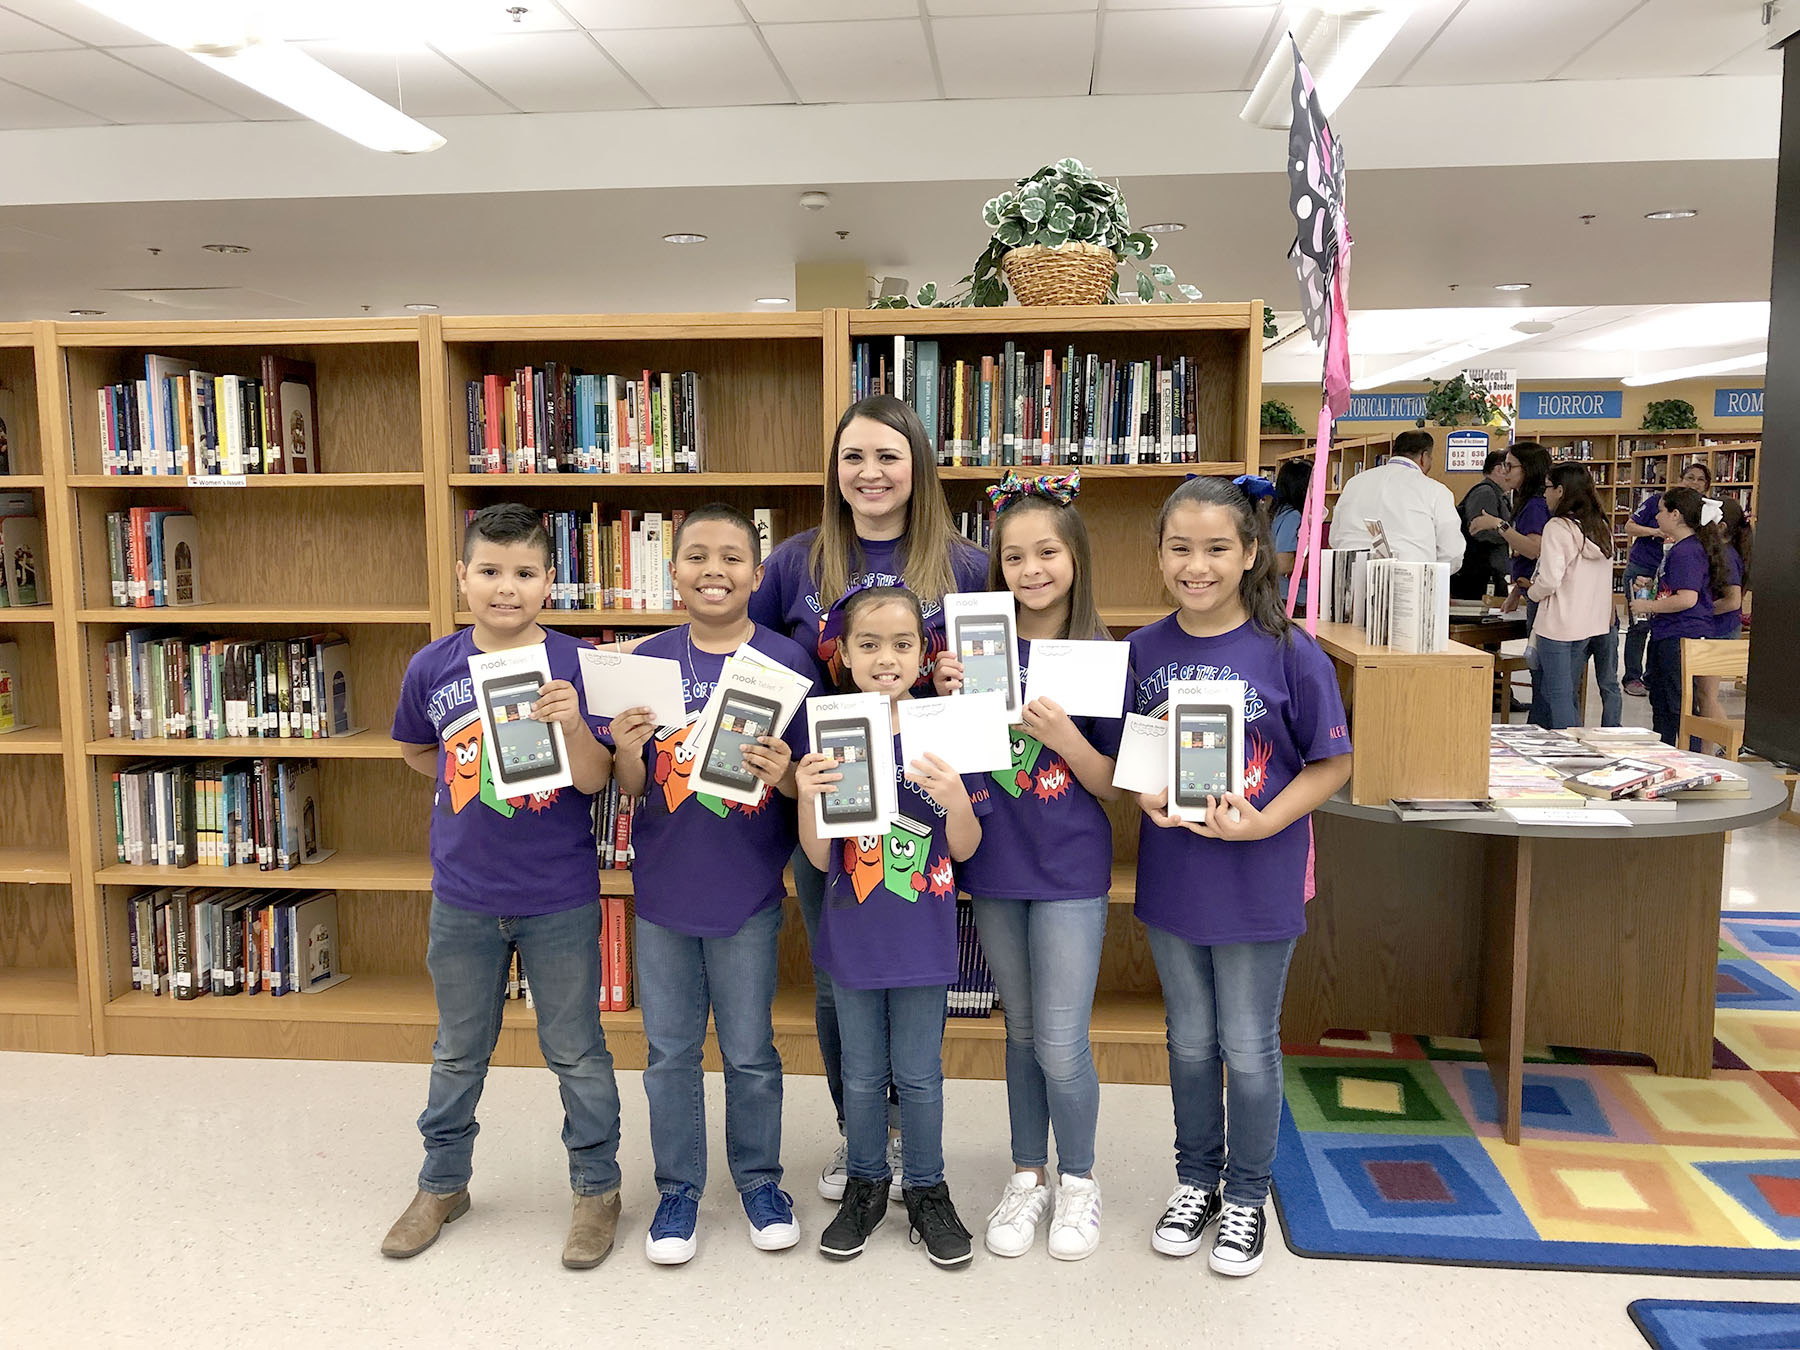 Elementary schools battle for book supremacy